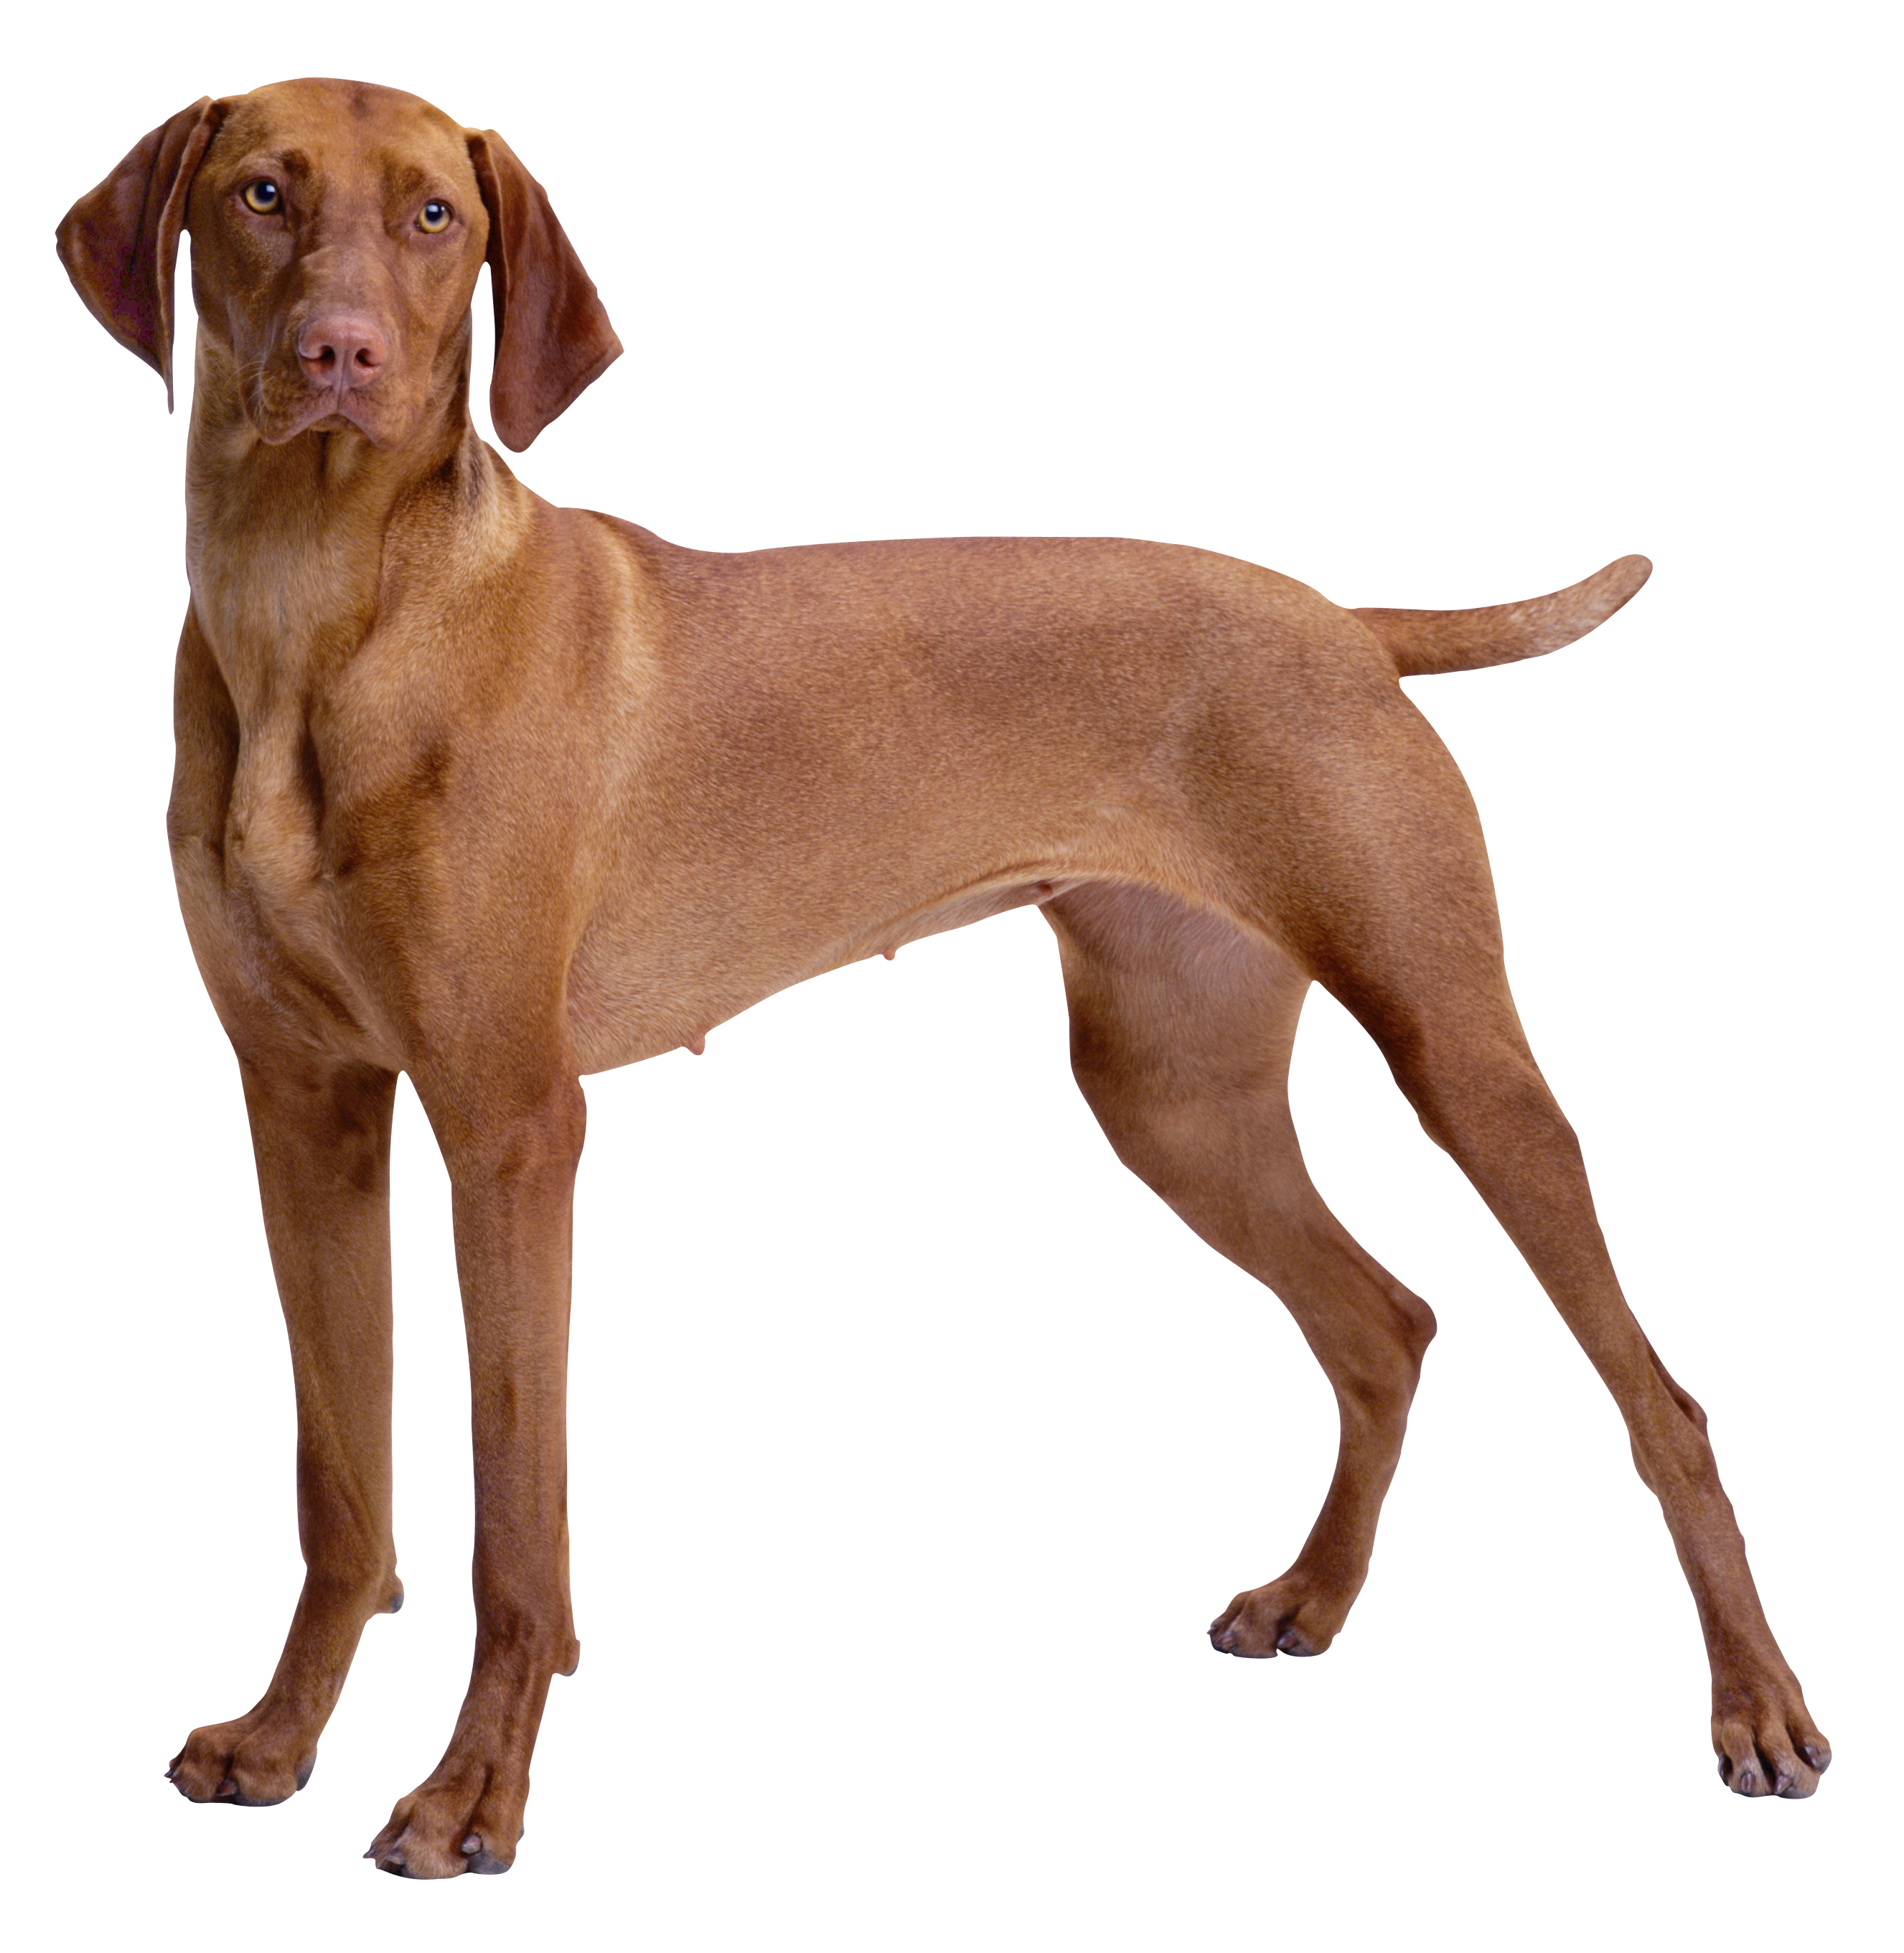 dogs will be dogs Your dog's online owners manual, featuring articles about breed information, dog selection, training, grooming and care for dogs and puppies.